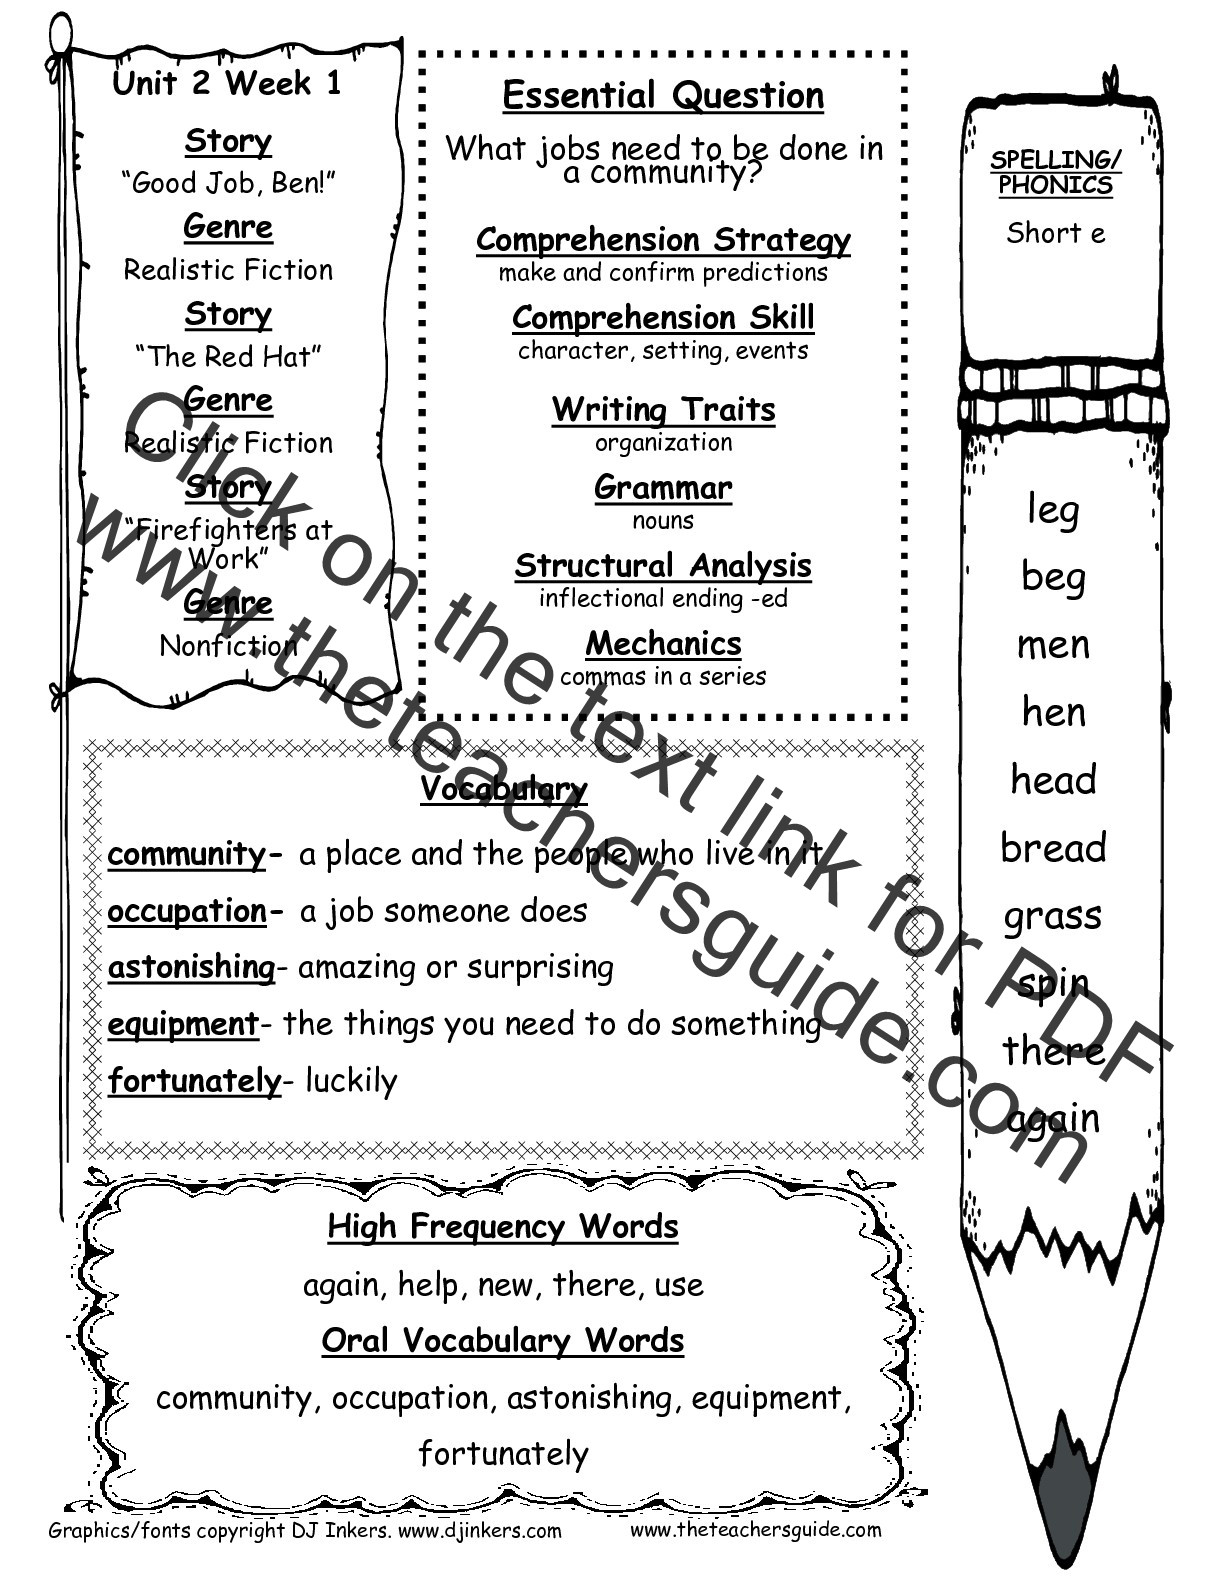 Predictions Worksheets 1st Grade Mcgraw Hill Wonders 1st Grade Resources and Printouts for